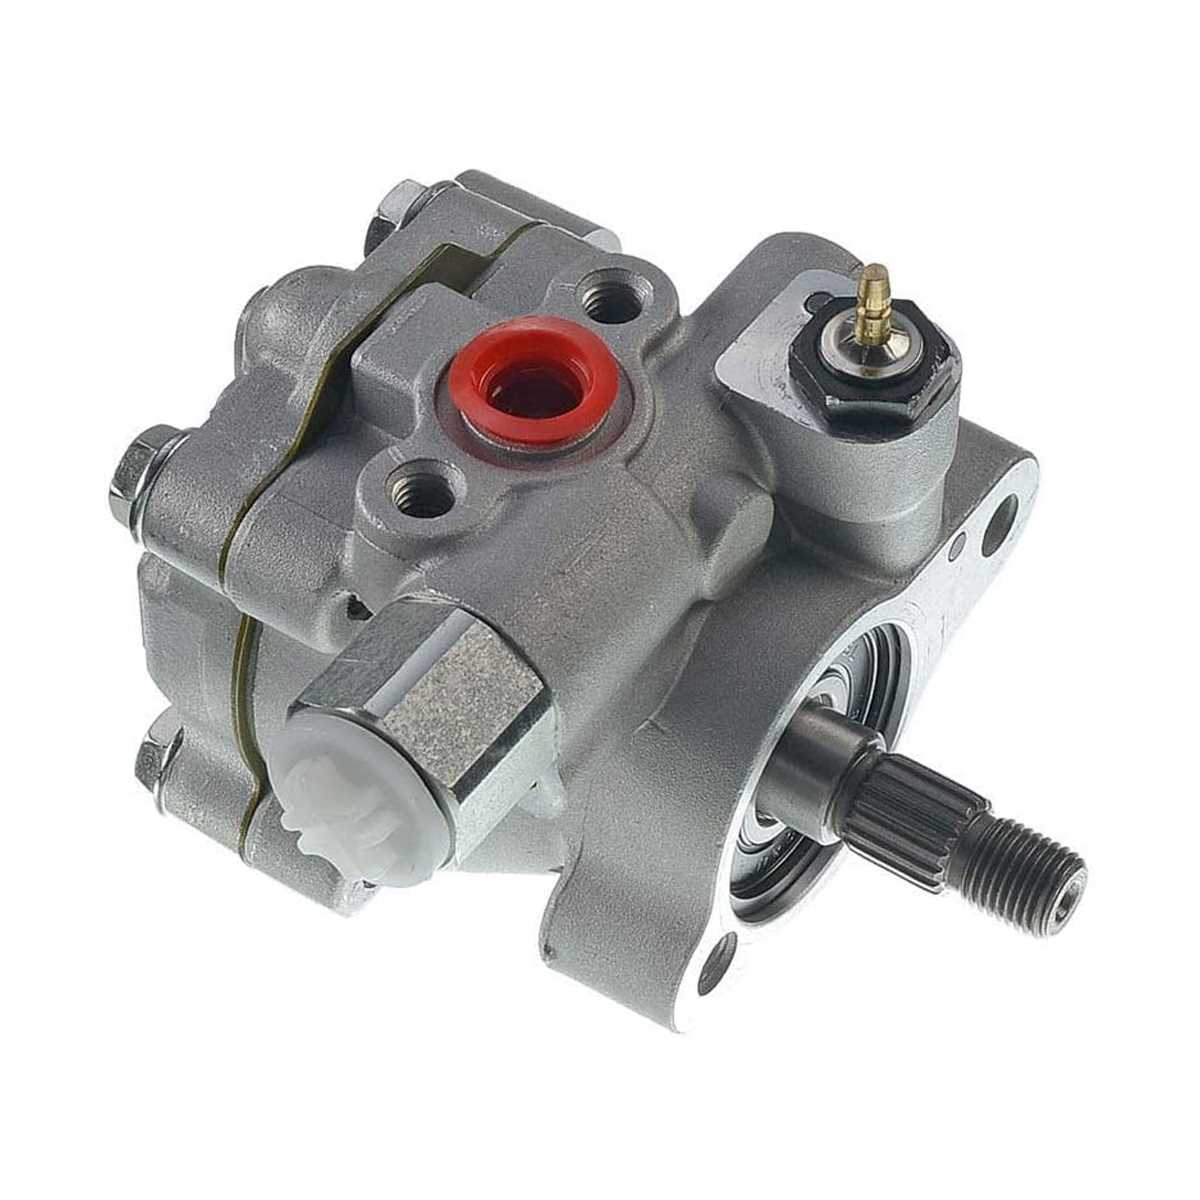 AutoShack PSP315447 Power Steering Pump